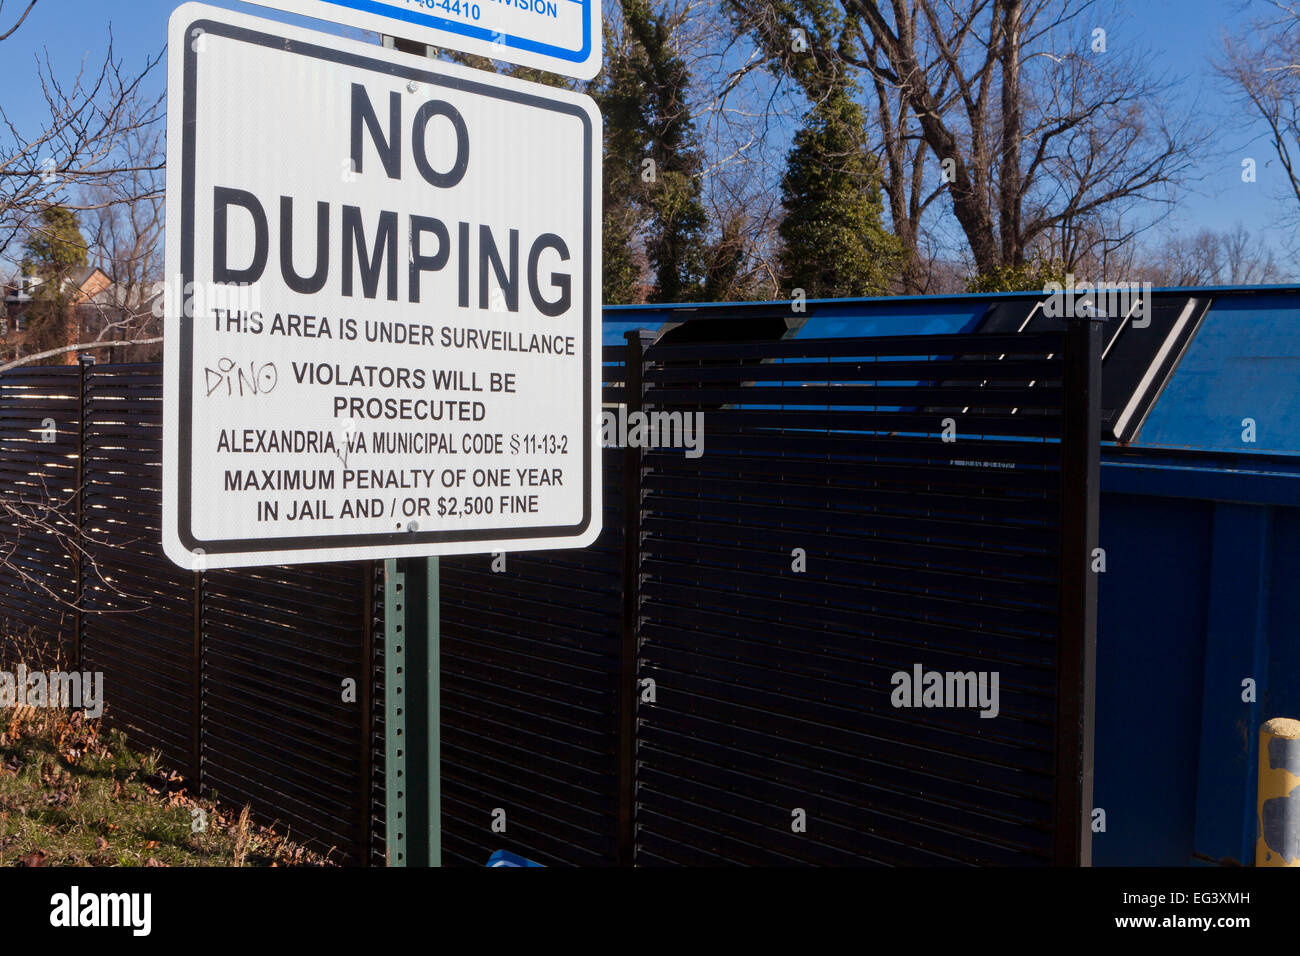 No Dumping sign - USA - Stock Image